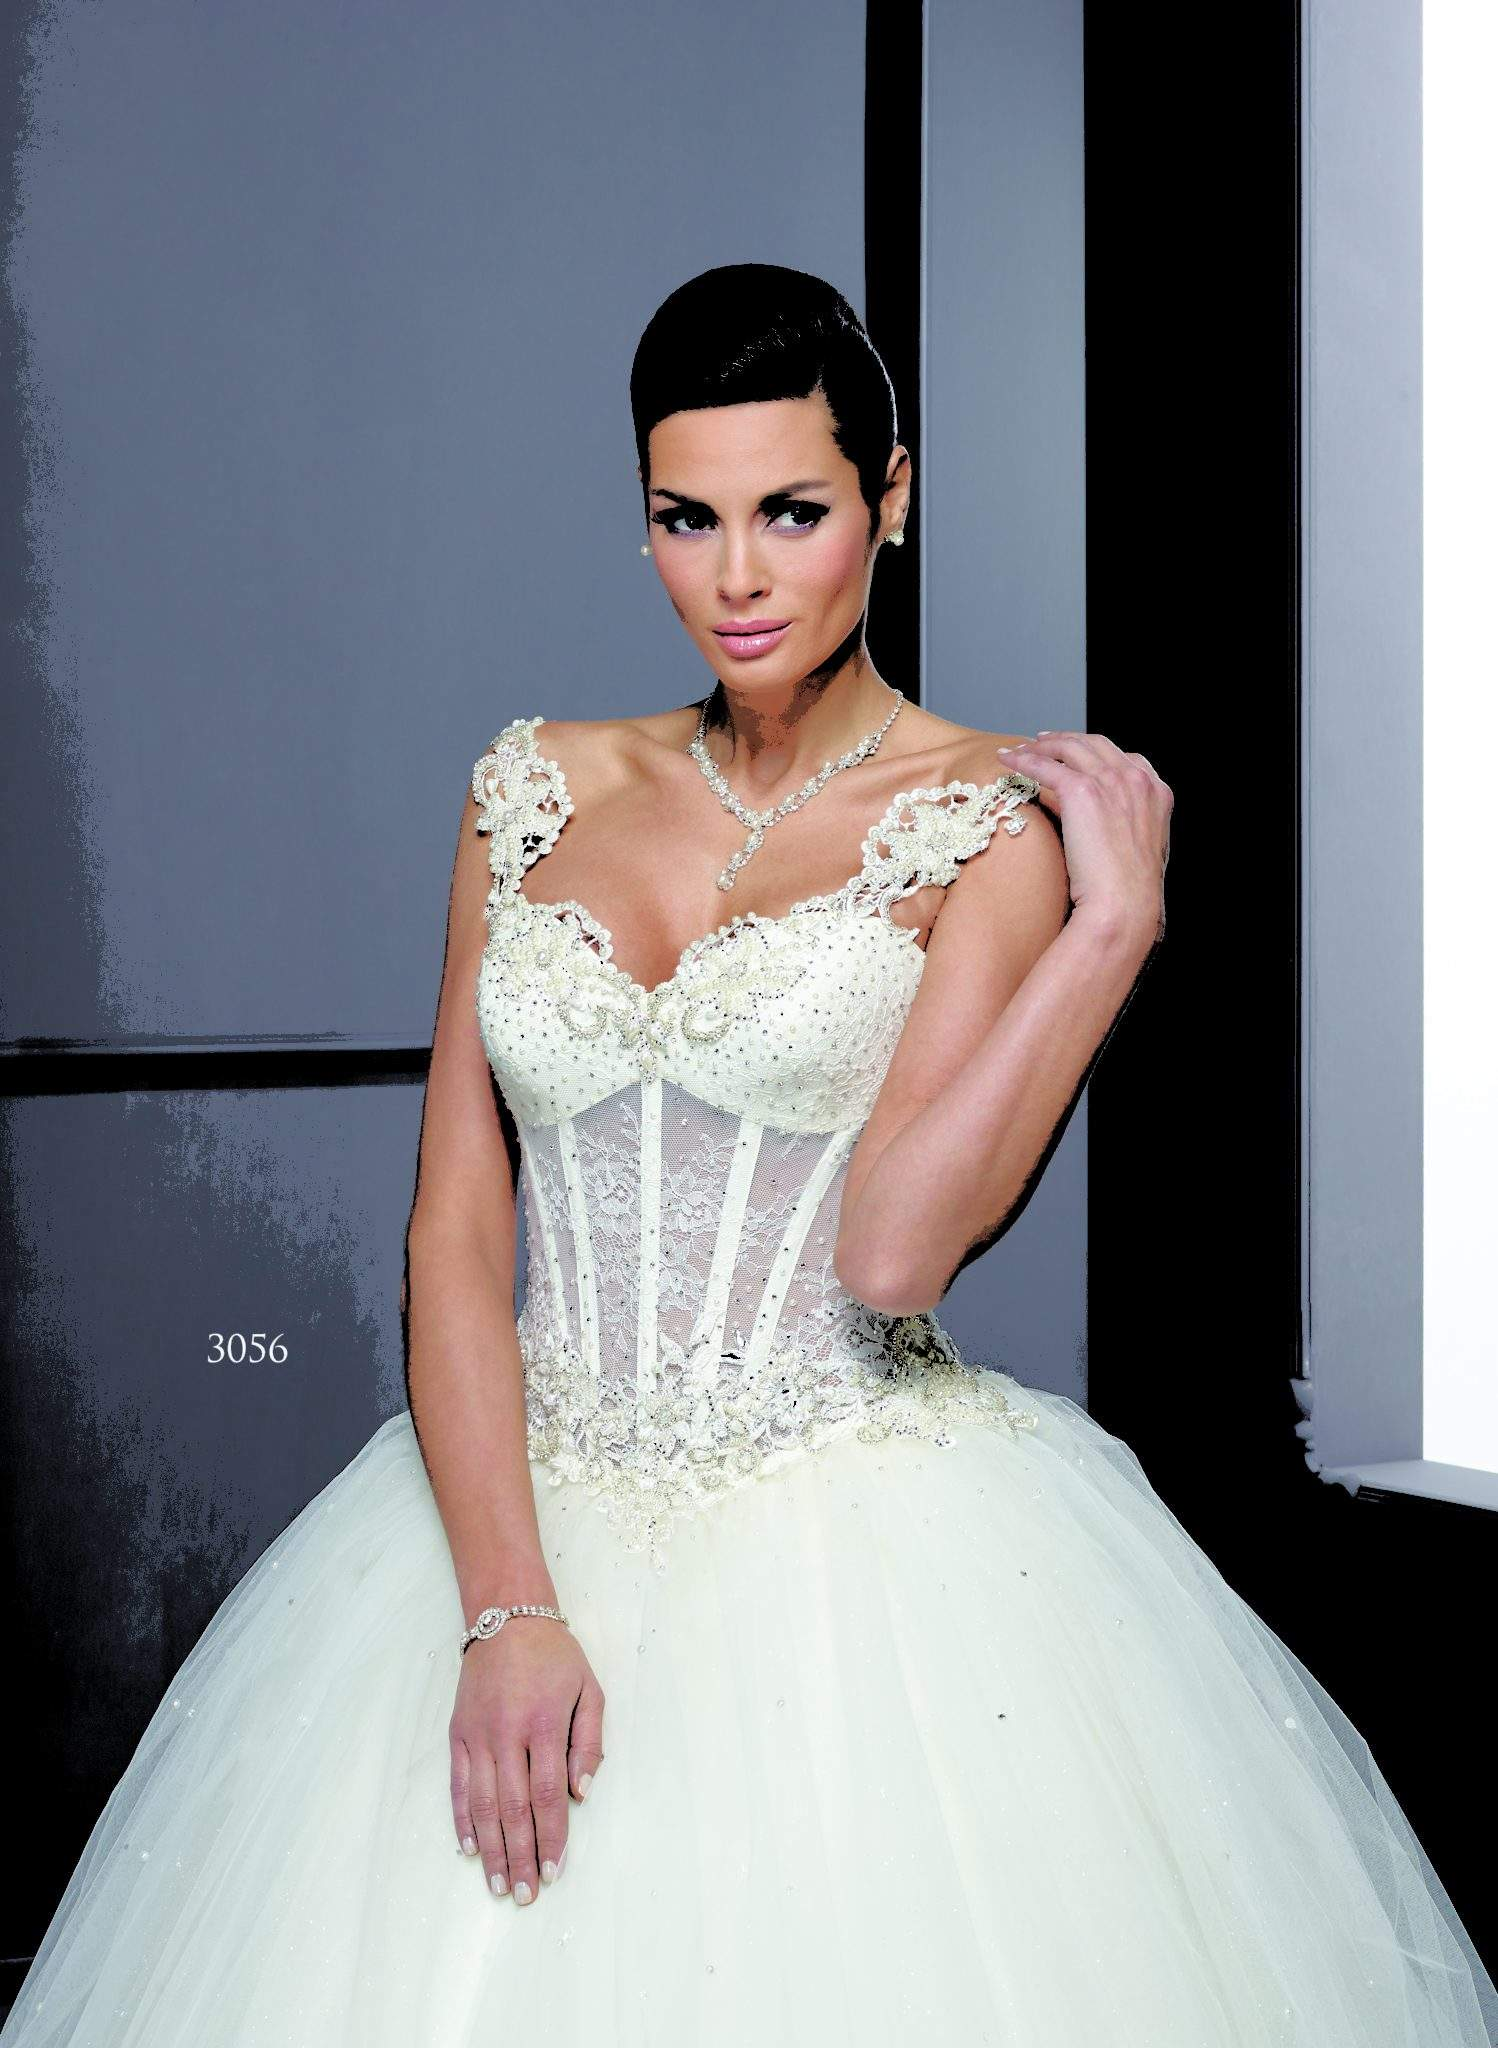 Custom Wedding Dresses from USA Dress Designer